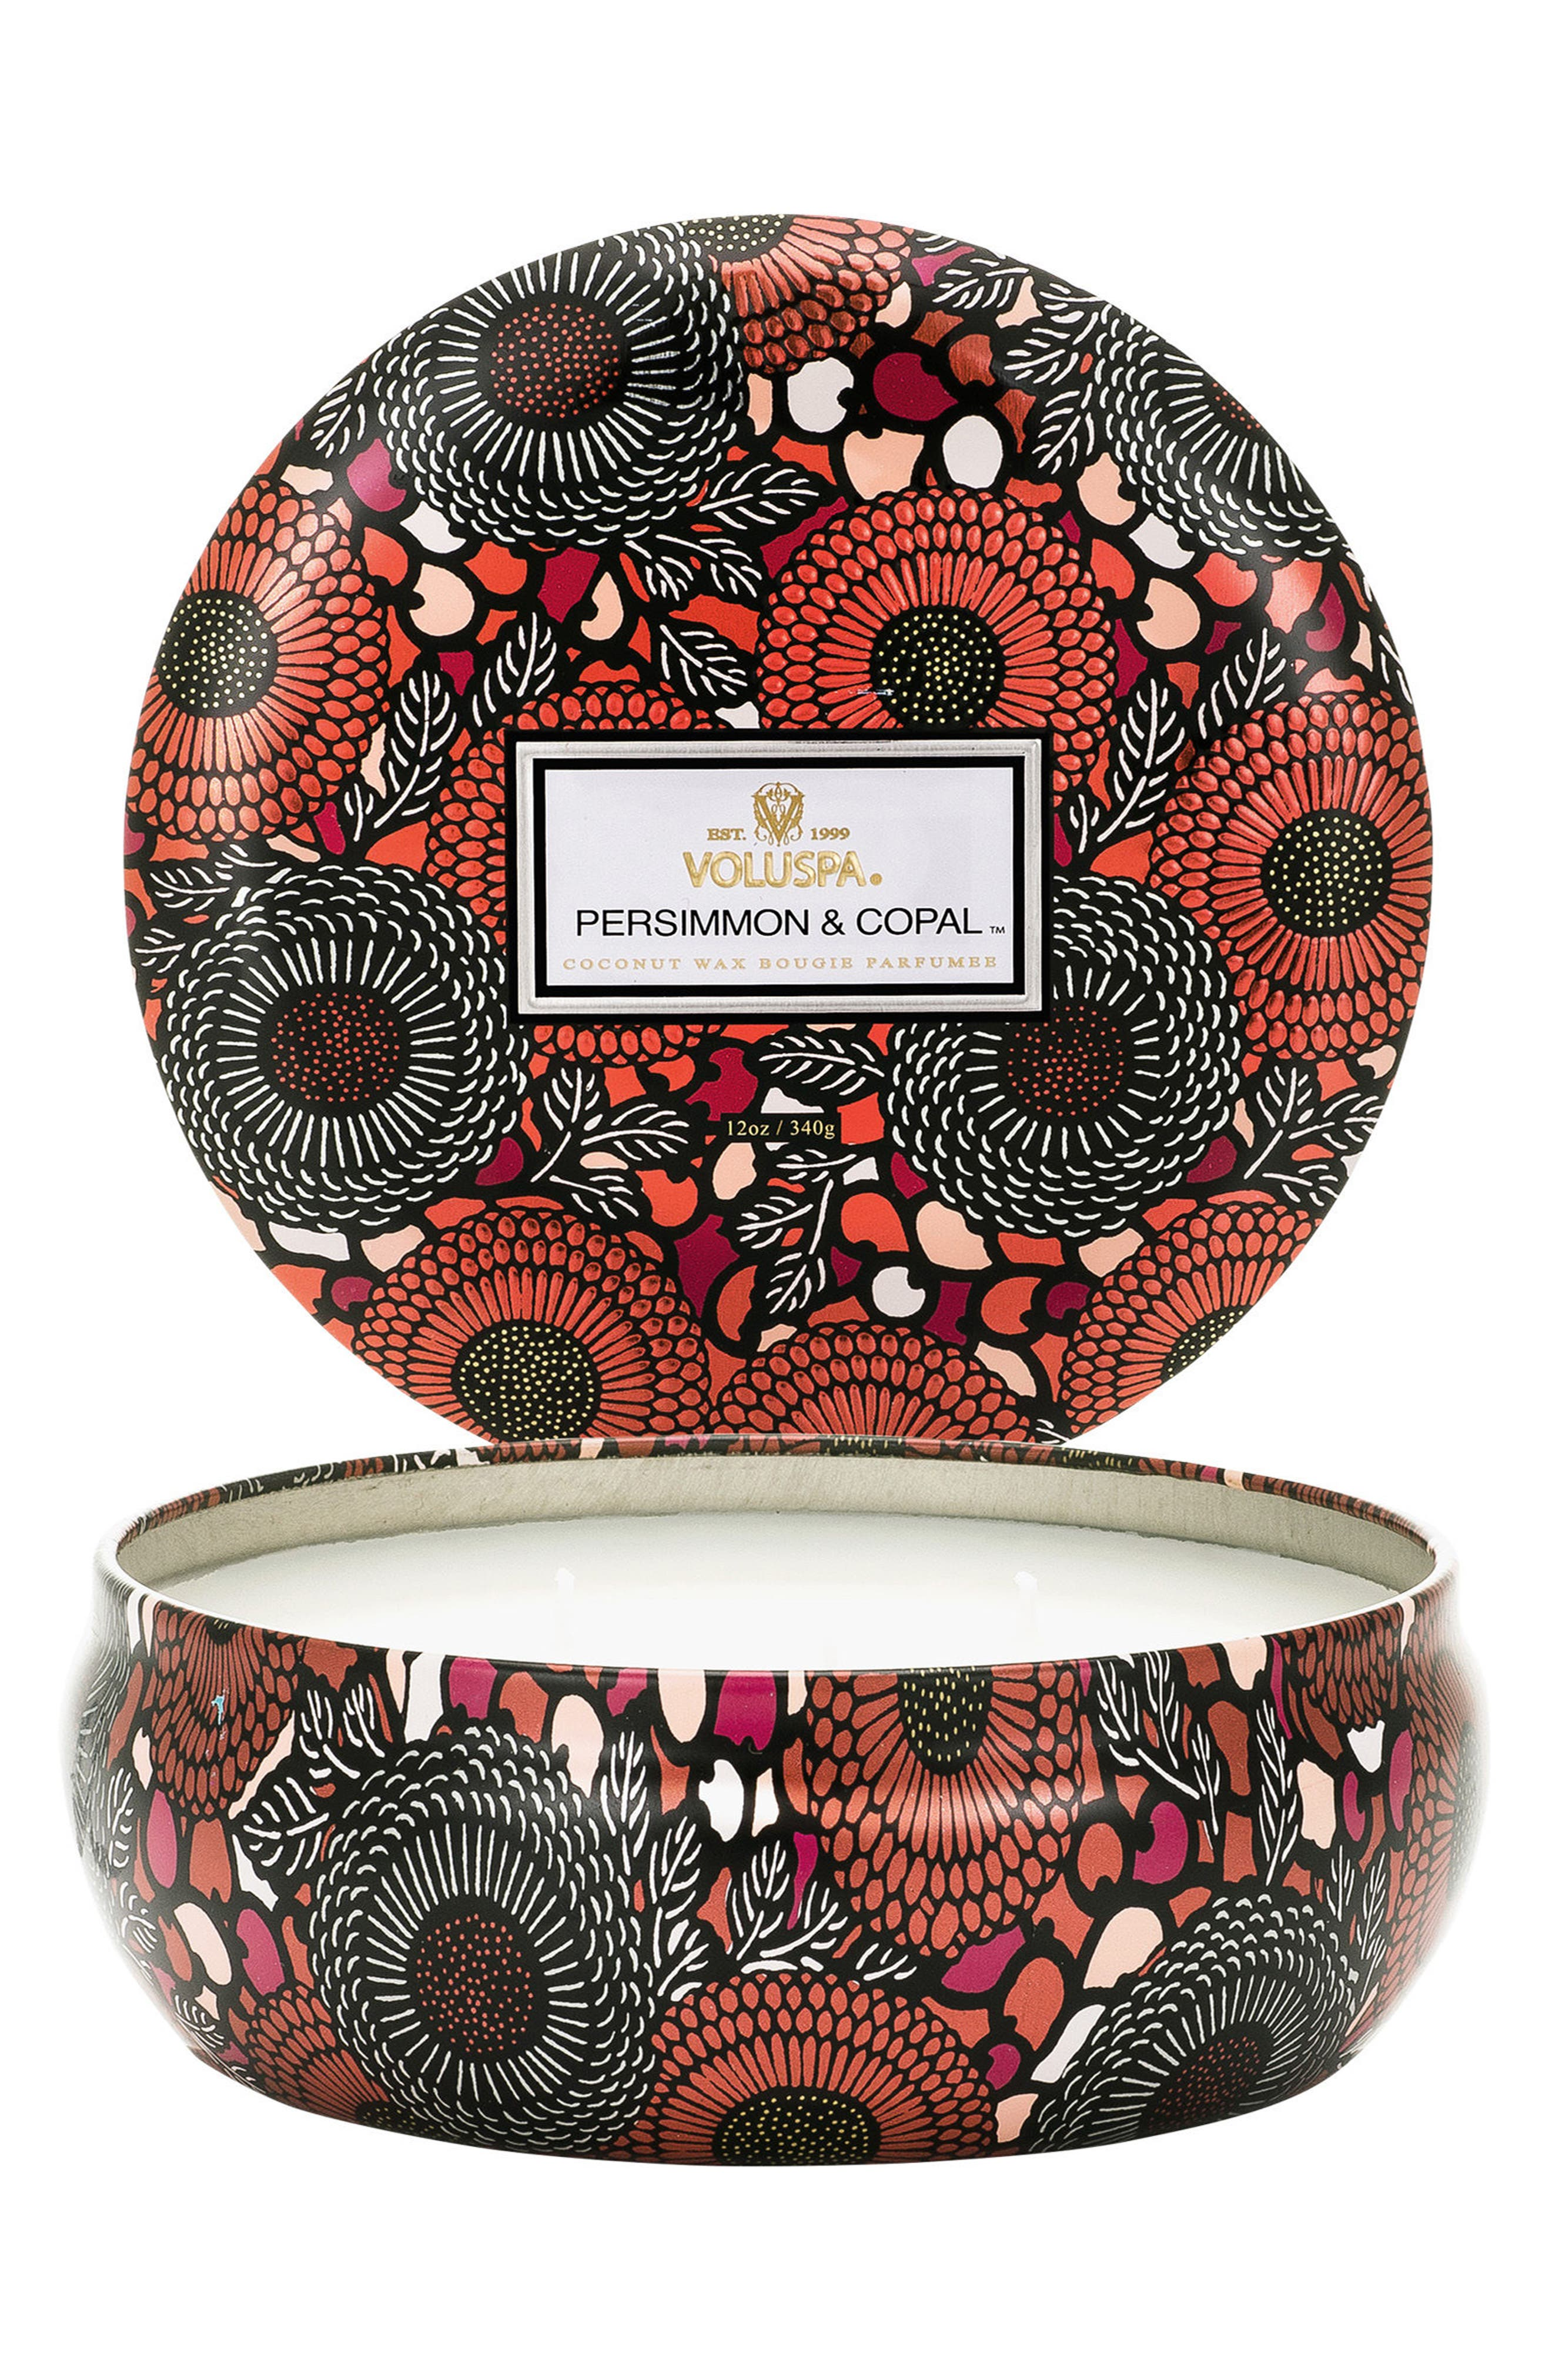 Japonica - Persimmon & Copal 3-Wick Candle,                         Main,                         color, Persimmon/ Copal